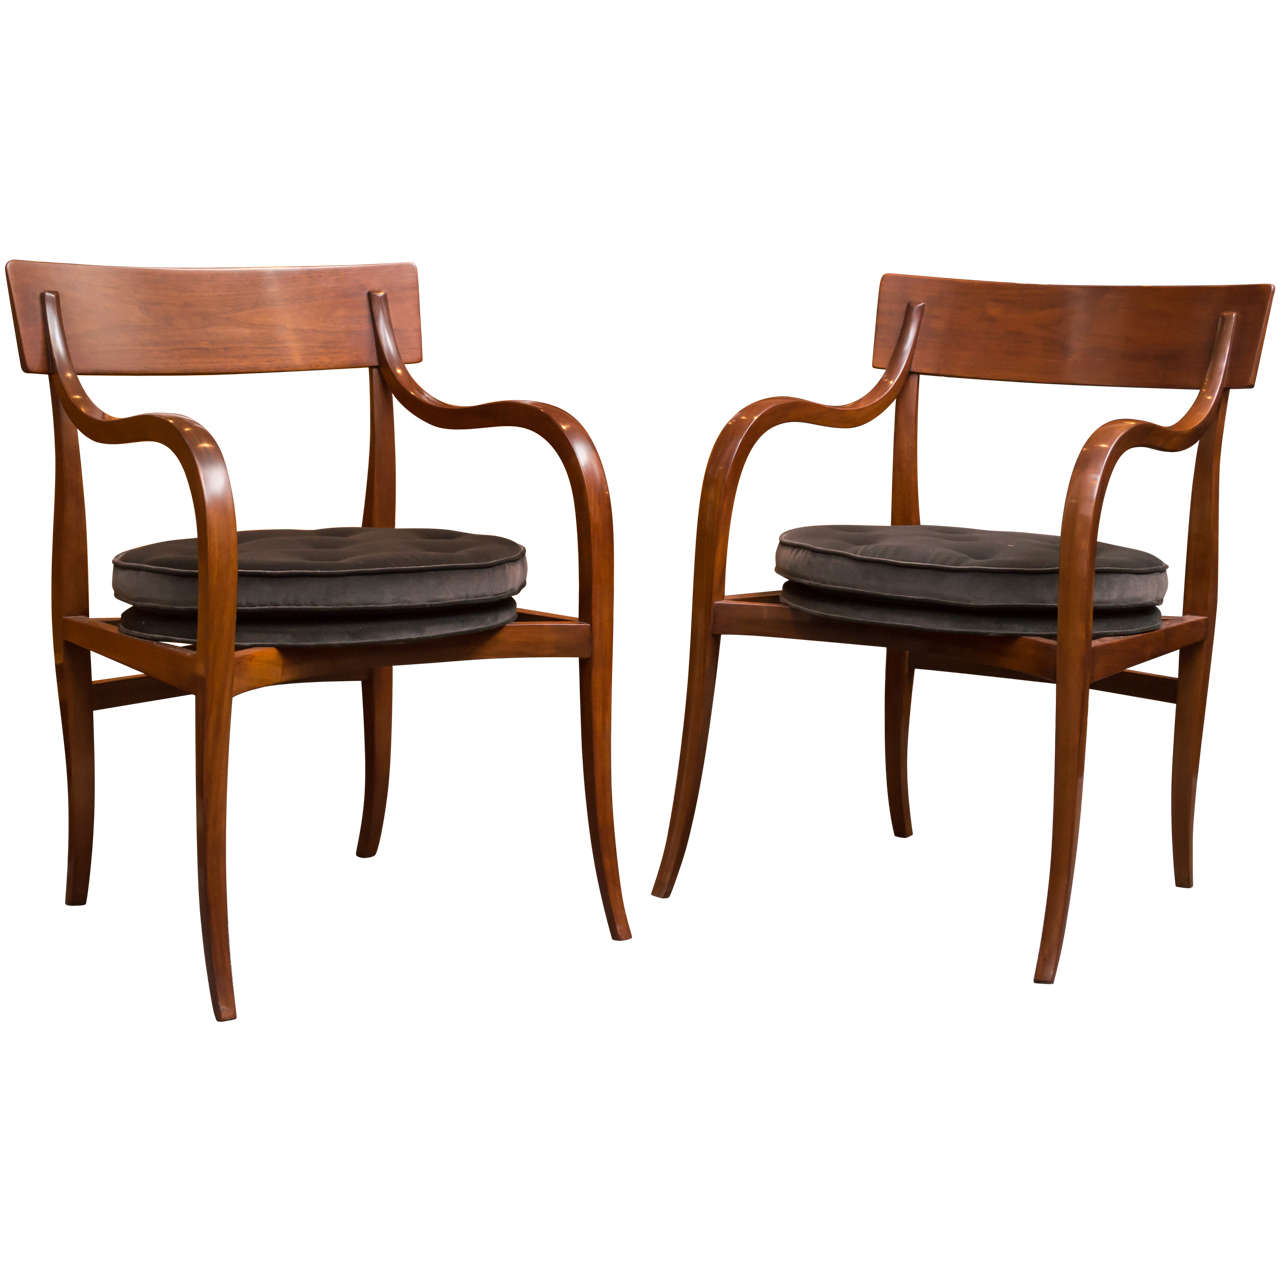 Alexandria Chair by Edward Wormley for Dunbar Furniture Co